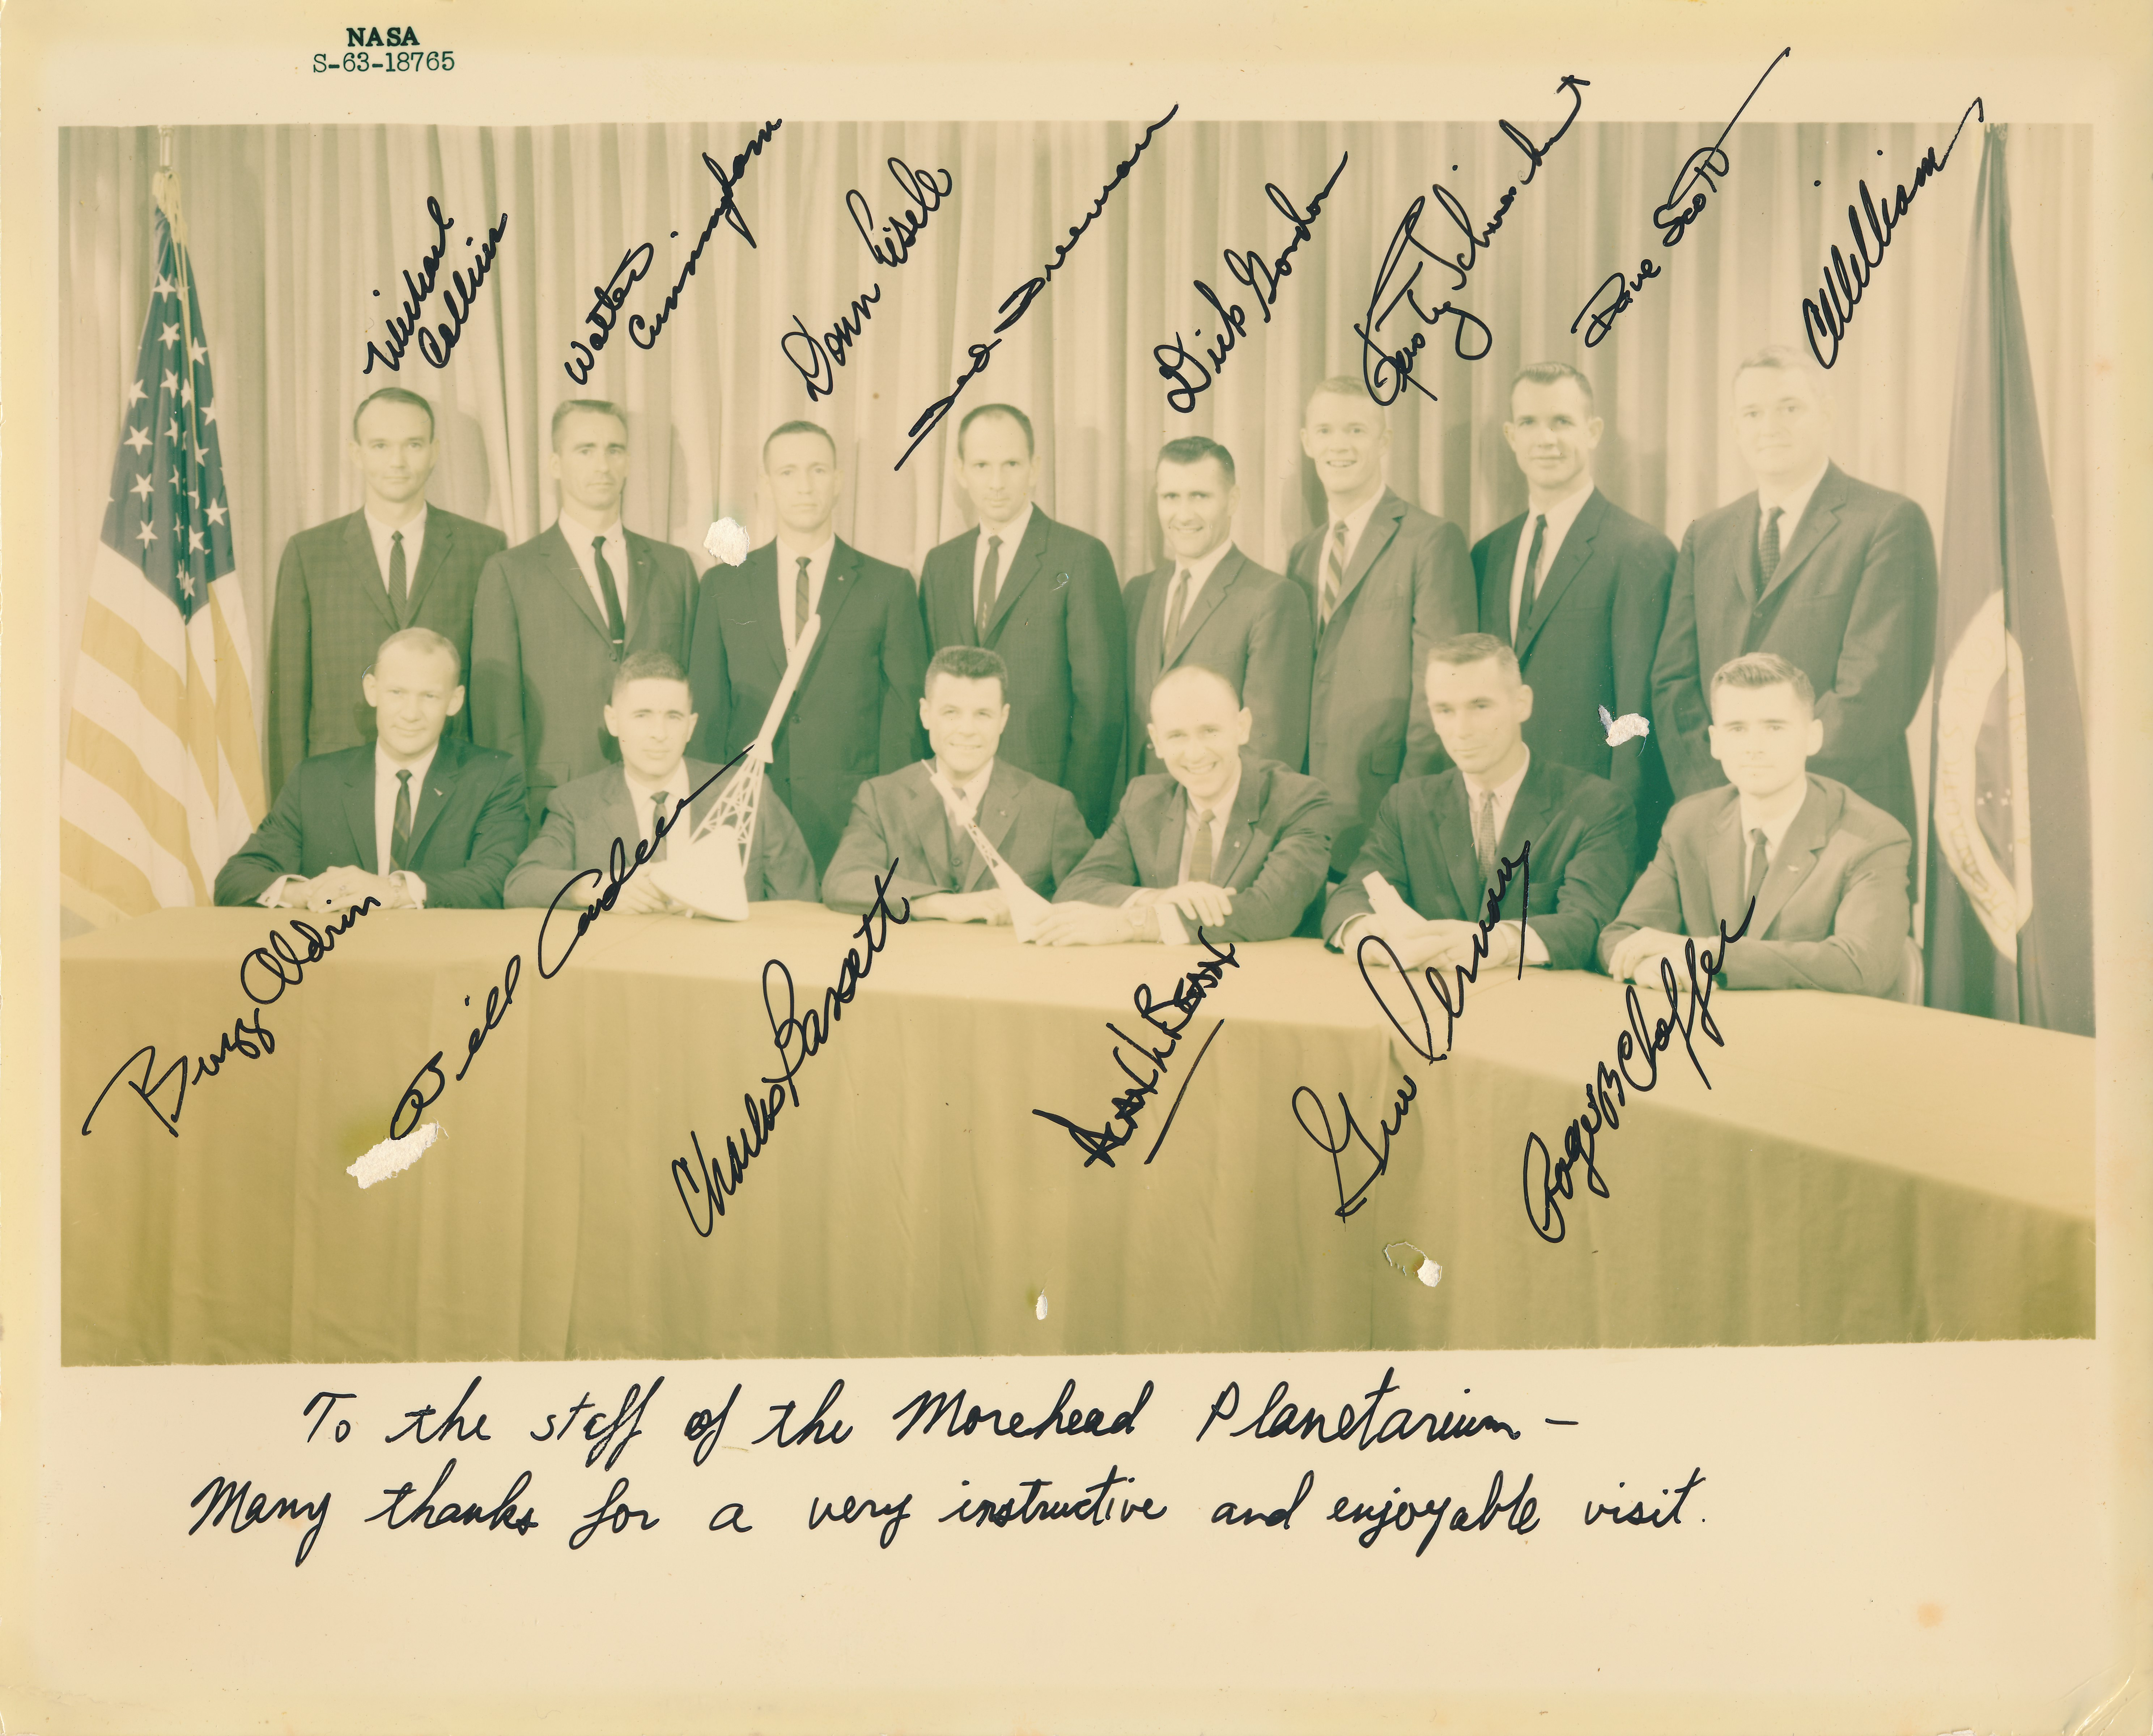 Group of 14 (NASA Astronaut Group 3) signed portrait, courtesy of the Carol CJ Jenzano collection, copyright 2018.